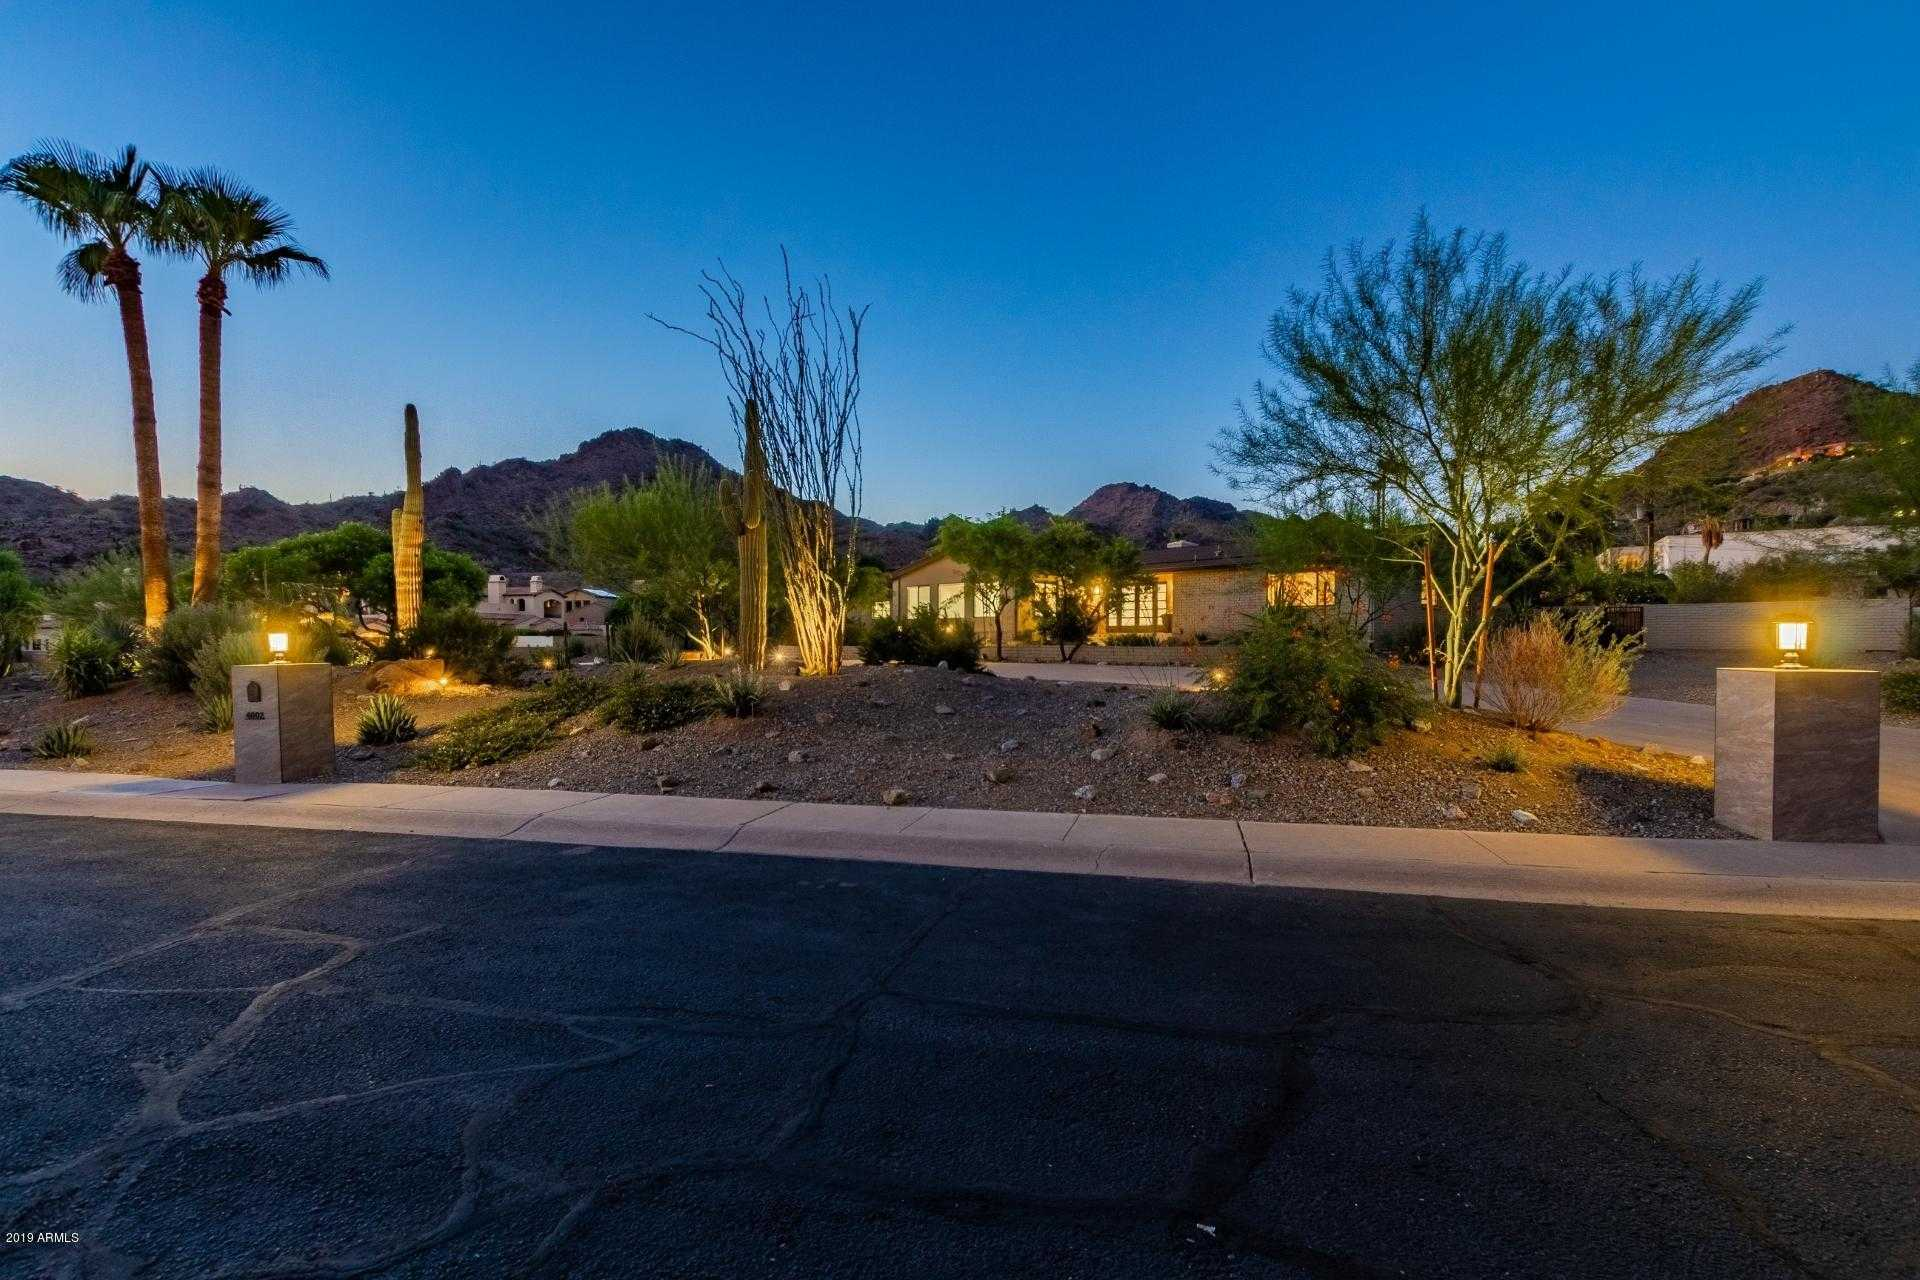 $1,300,000 - 3Br/3Ba - Home for Sale in Lincoln Heights 8, 12-25, 31-44, Paradise Valley